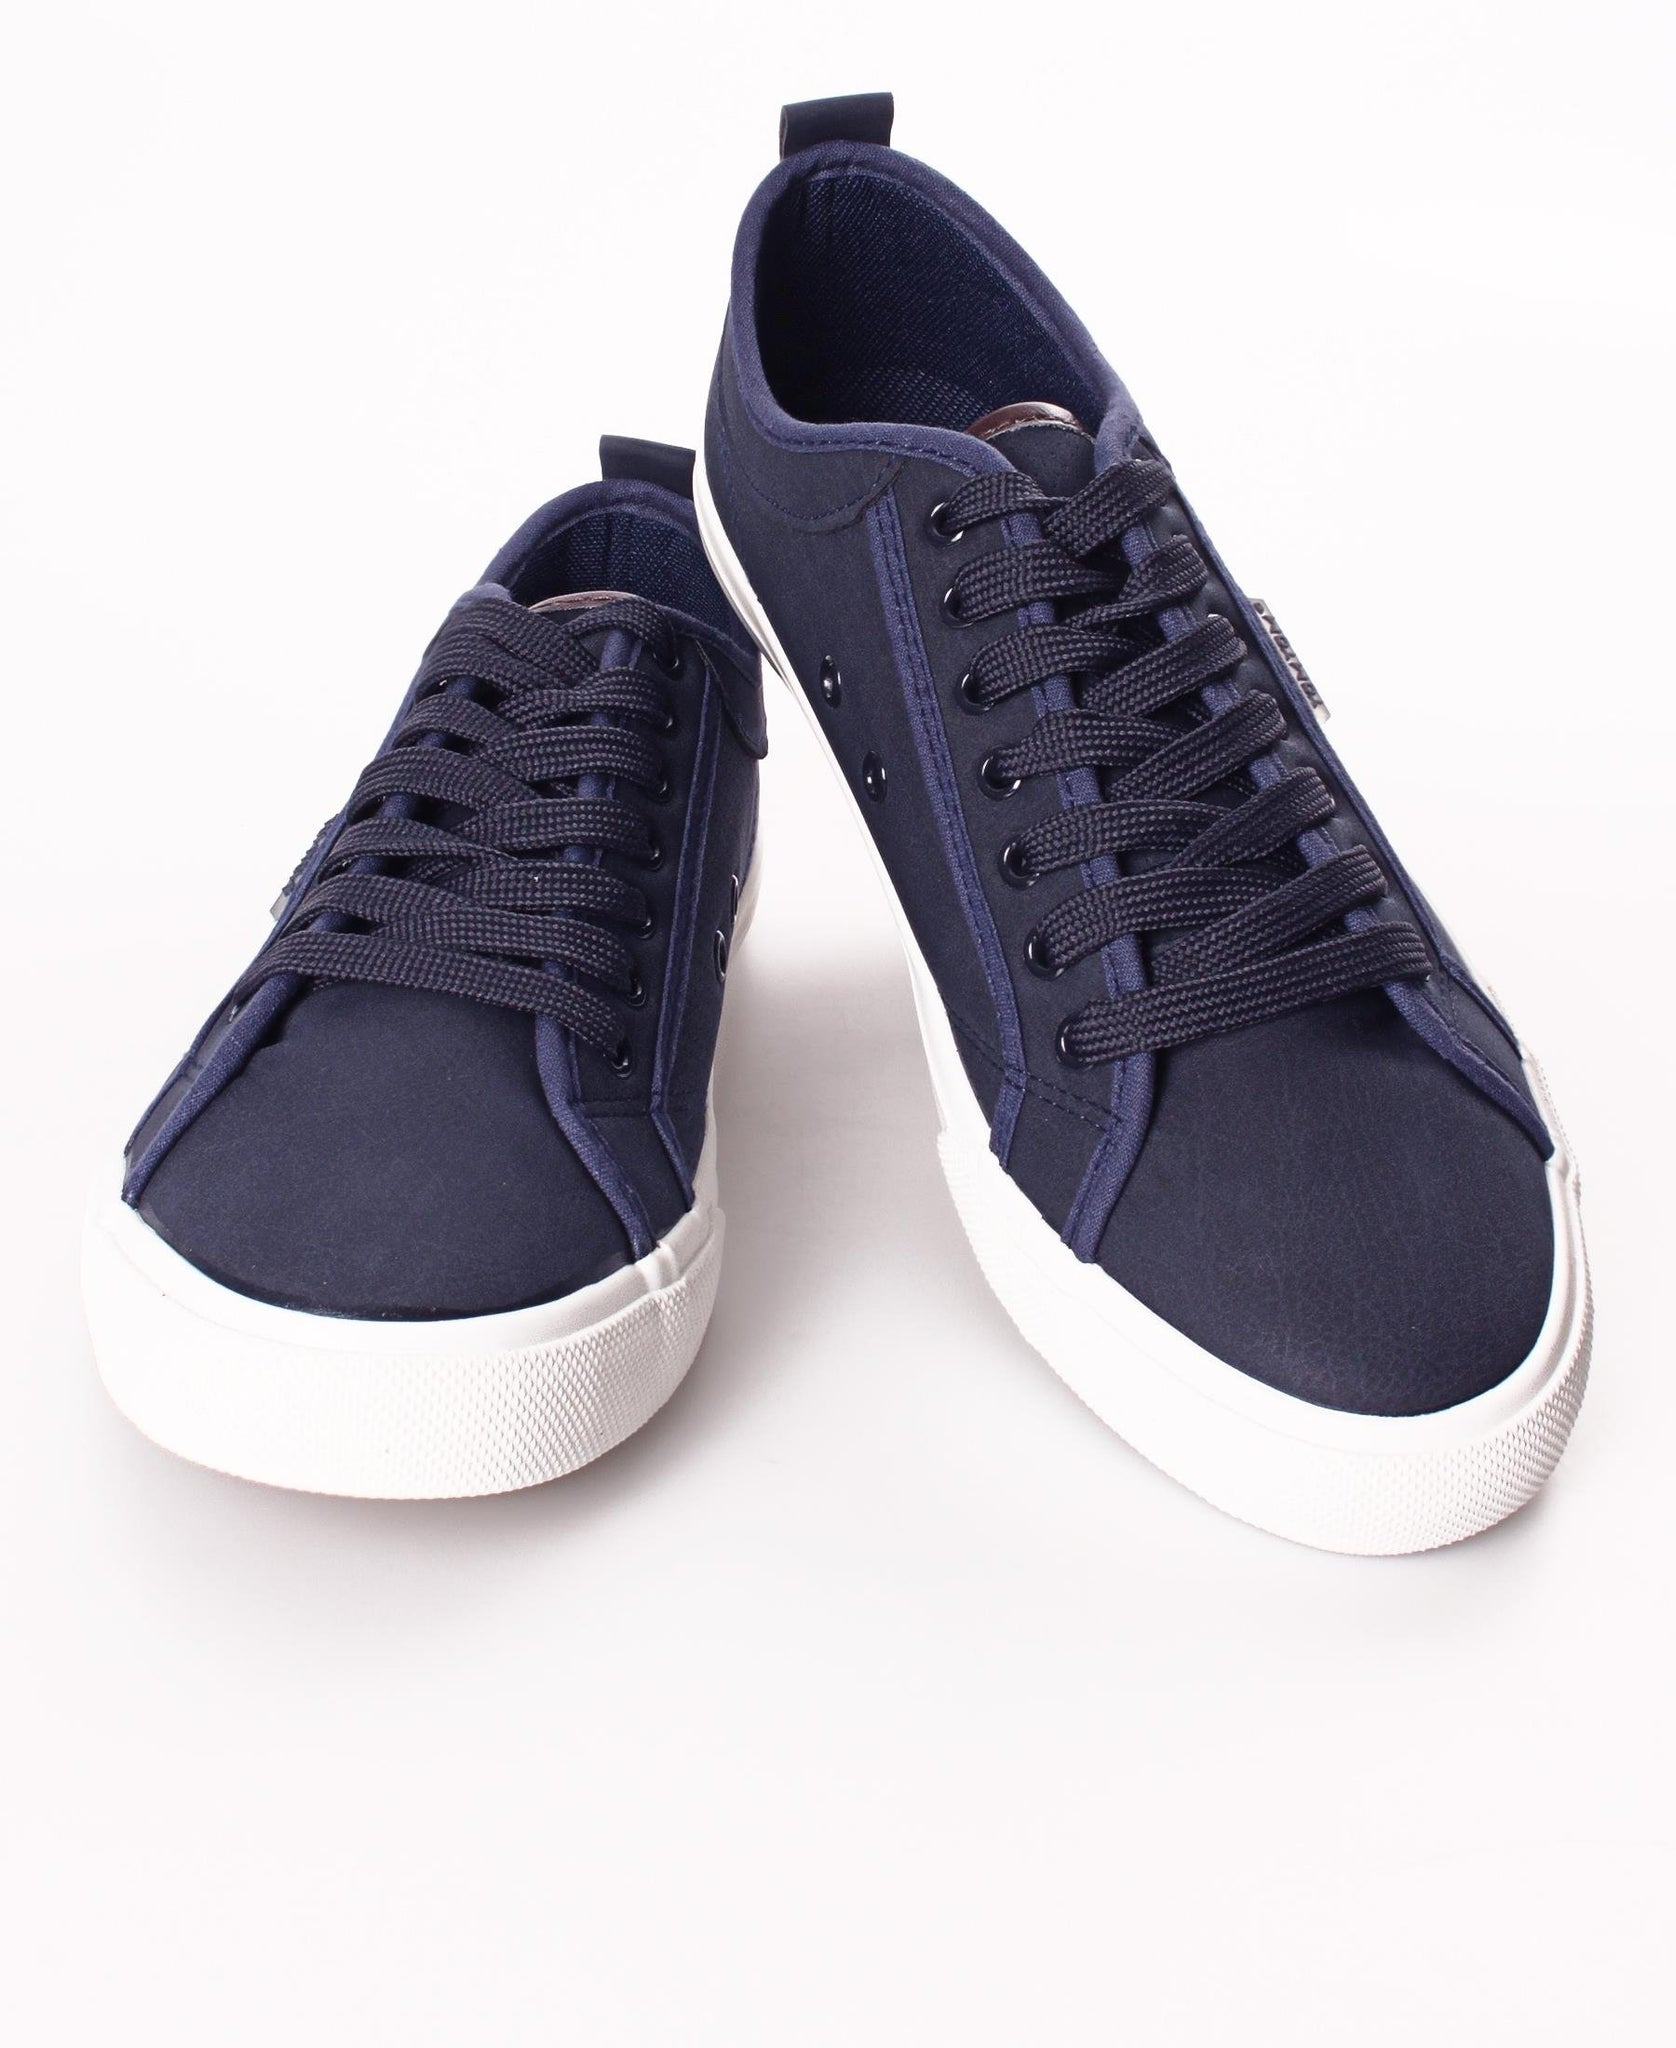 Men's Playa Sneakers - Navy